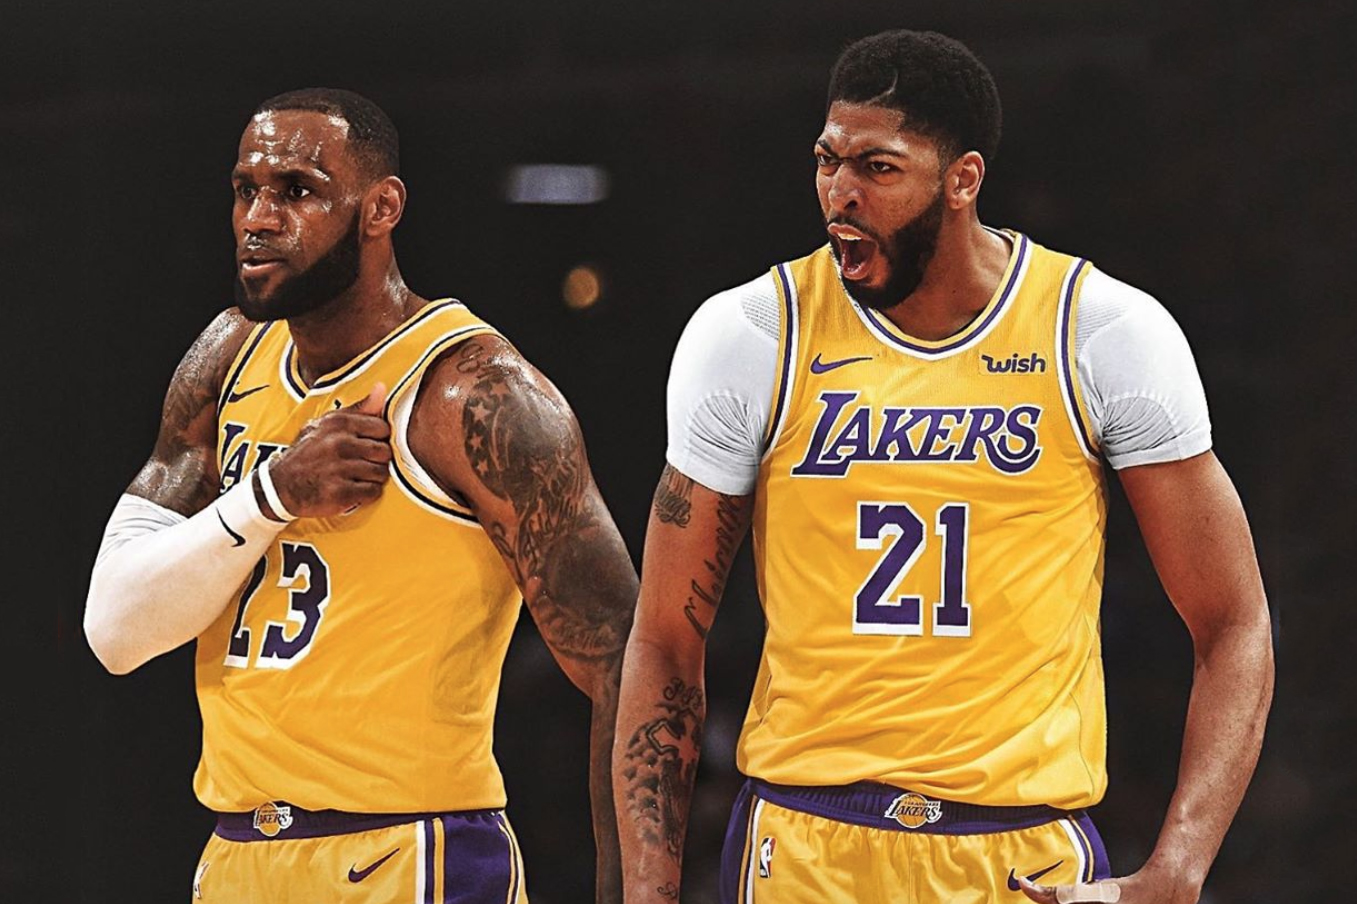 多方消息表示 Anthony Davis 將被 Pelicans 交易至 Lakers